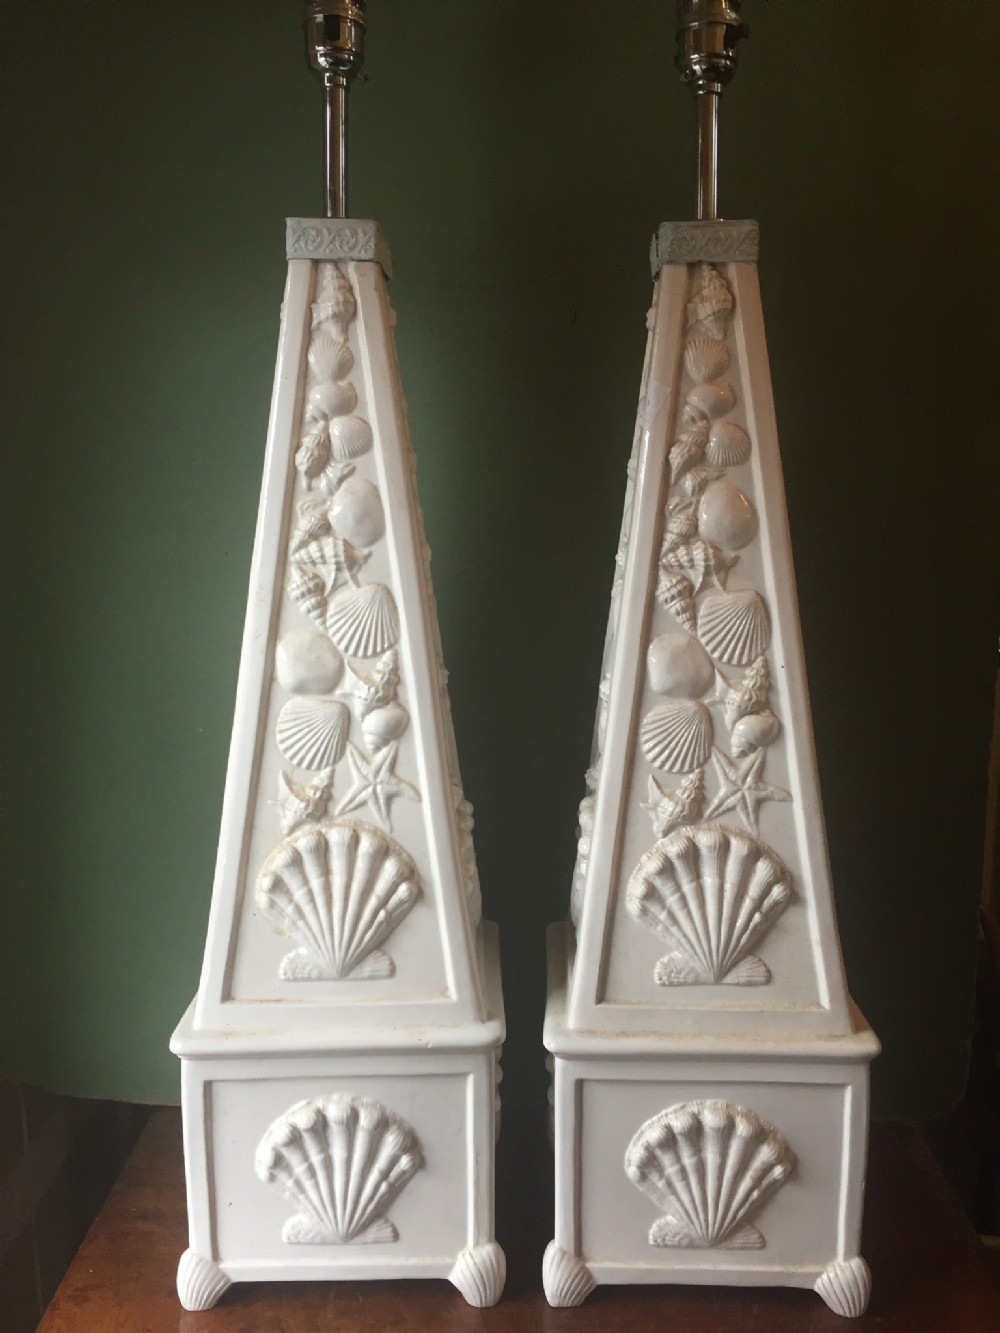 highly decorative pair of early c20th italian pottery lamps of obelisk form with raised 'seashell' decoration